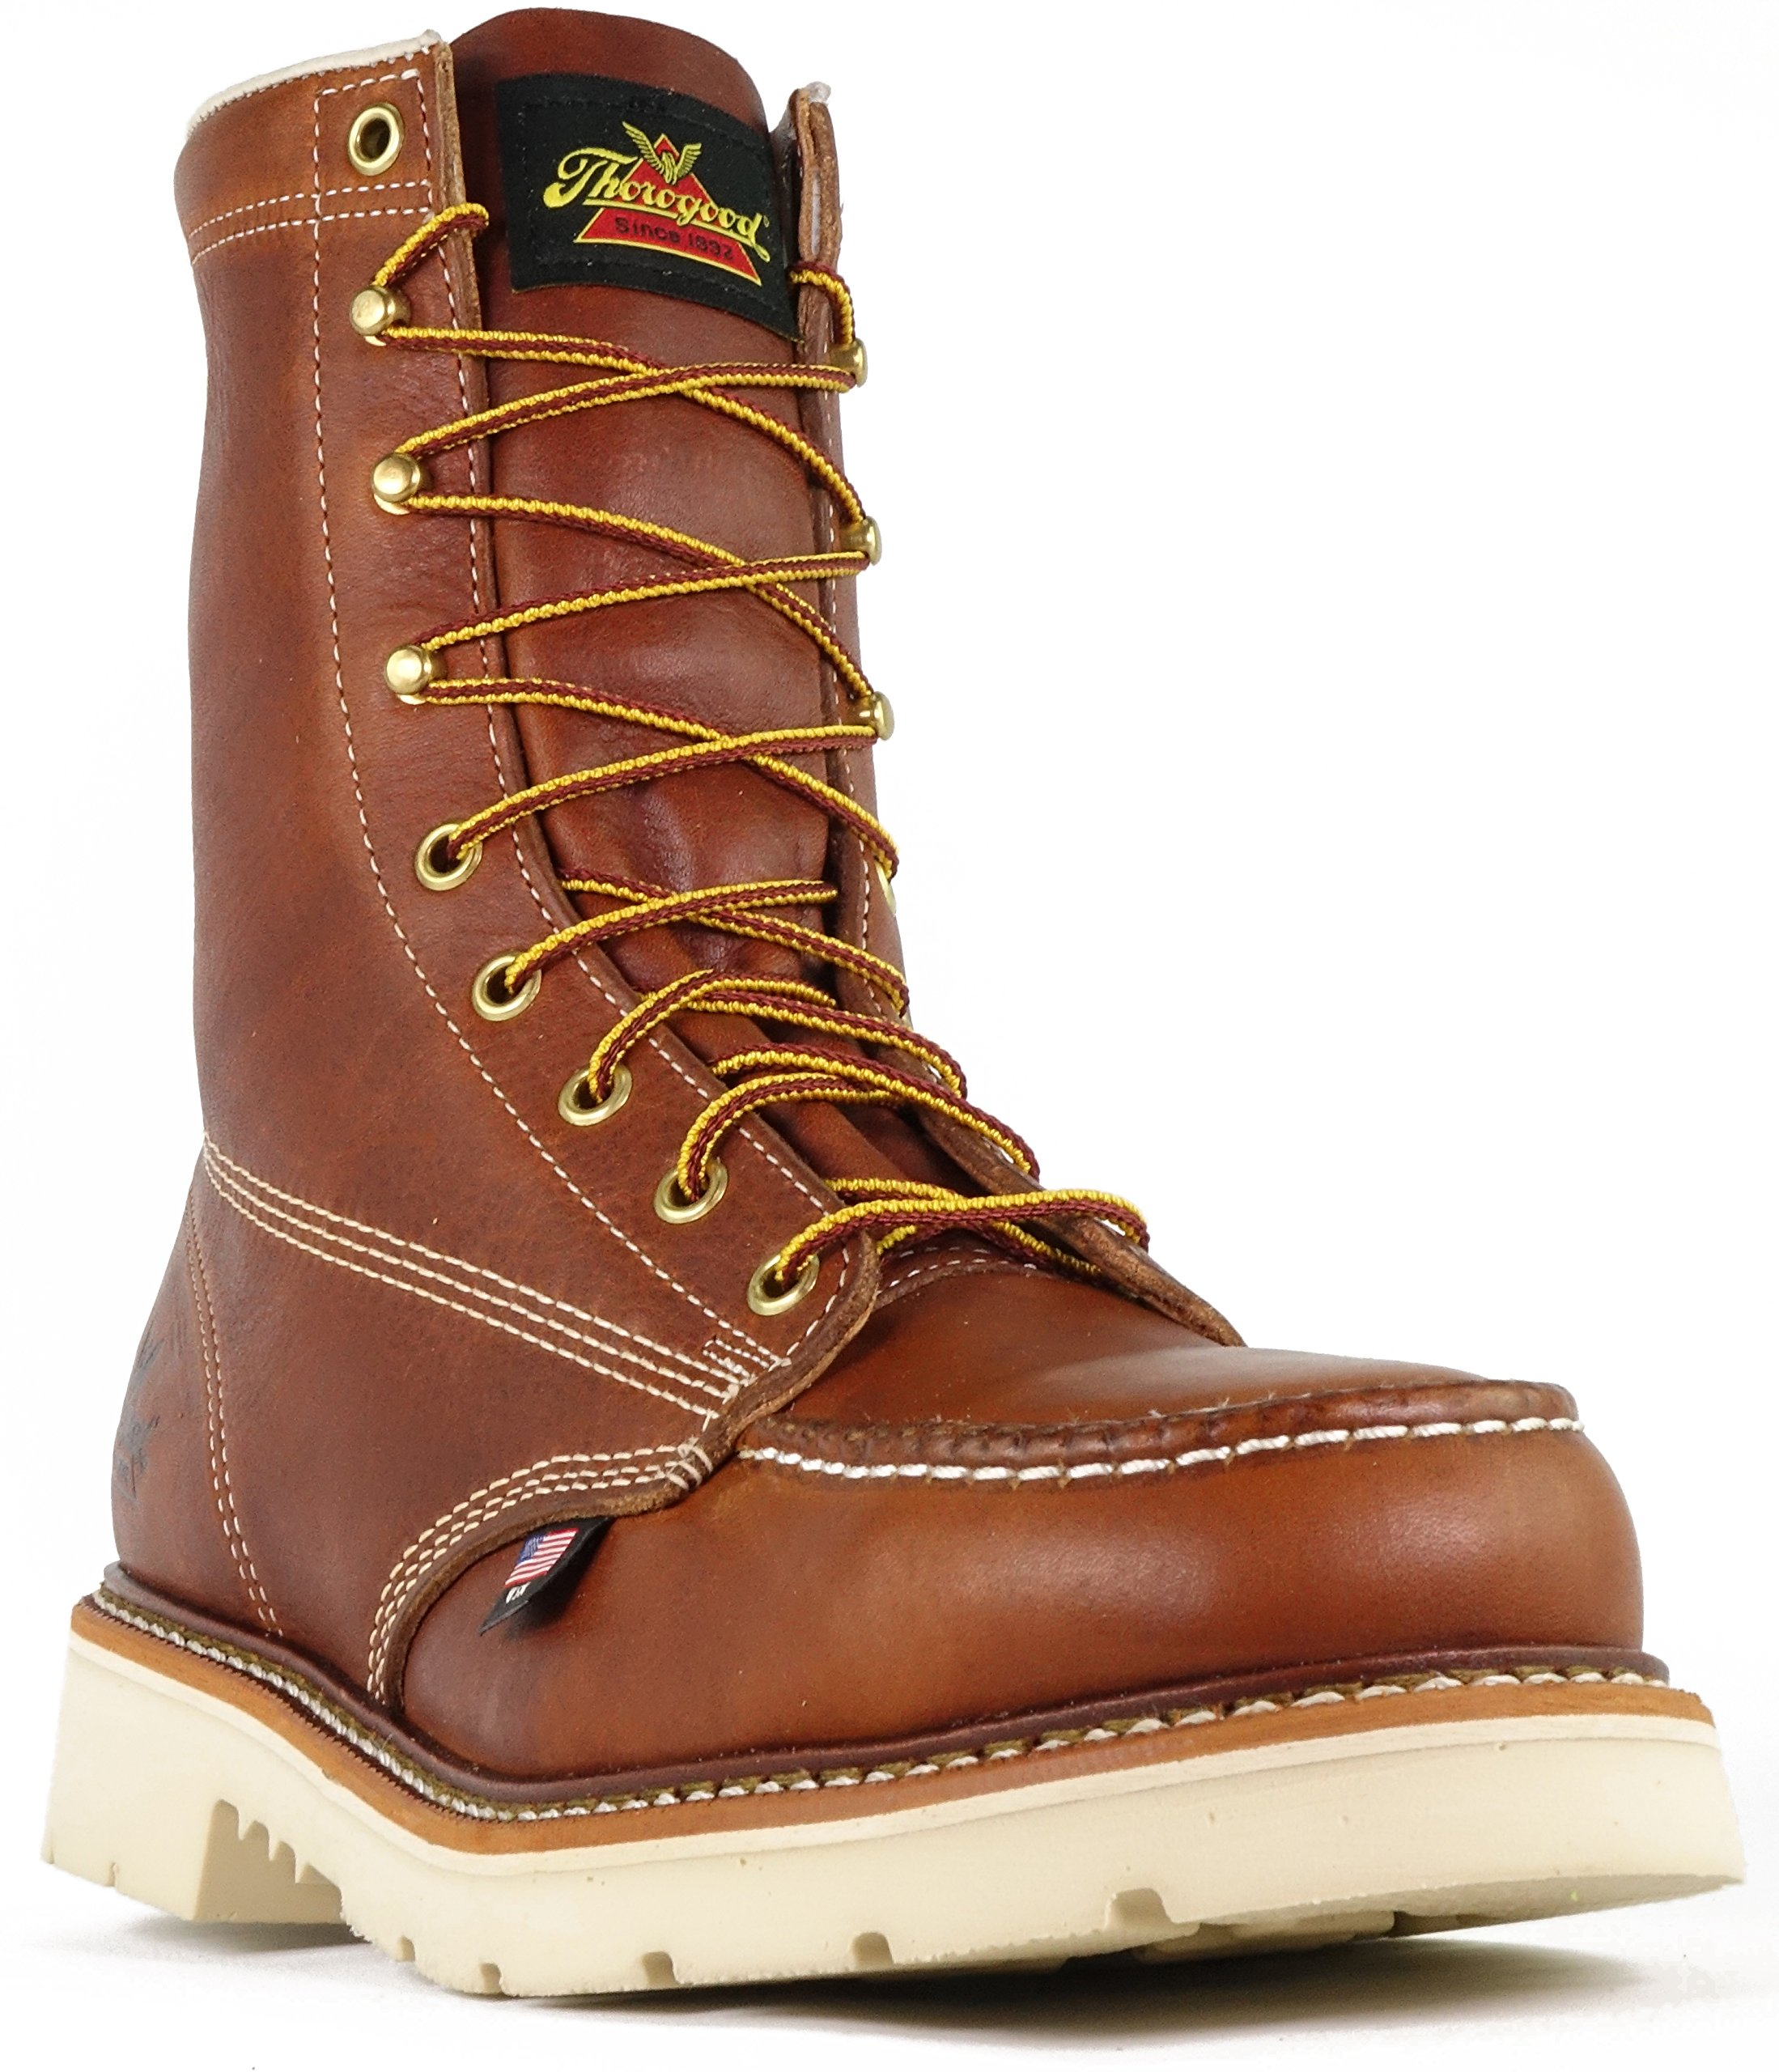 Thorogood 804-4308 Men's American Heritage 8'' Moc Toe, MAXWear 90 Safety Toe Boot, Tobacco Oil-Tanned - 11.5 D(M) US